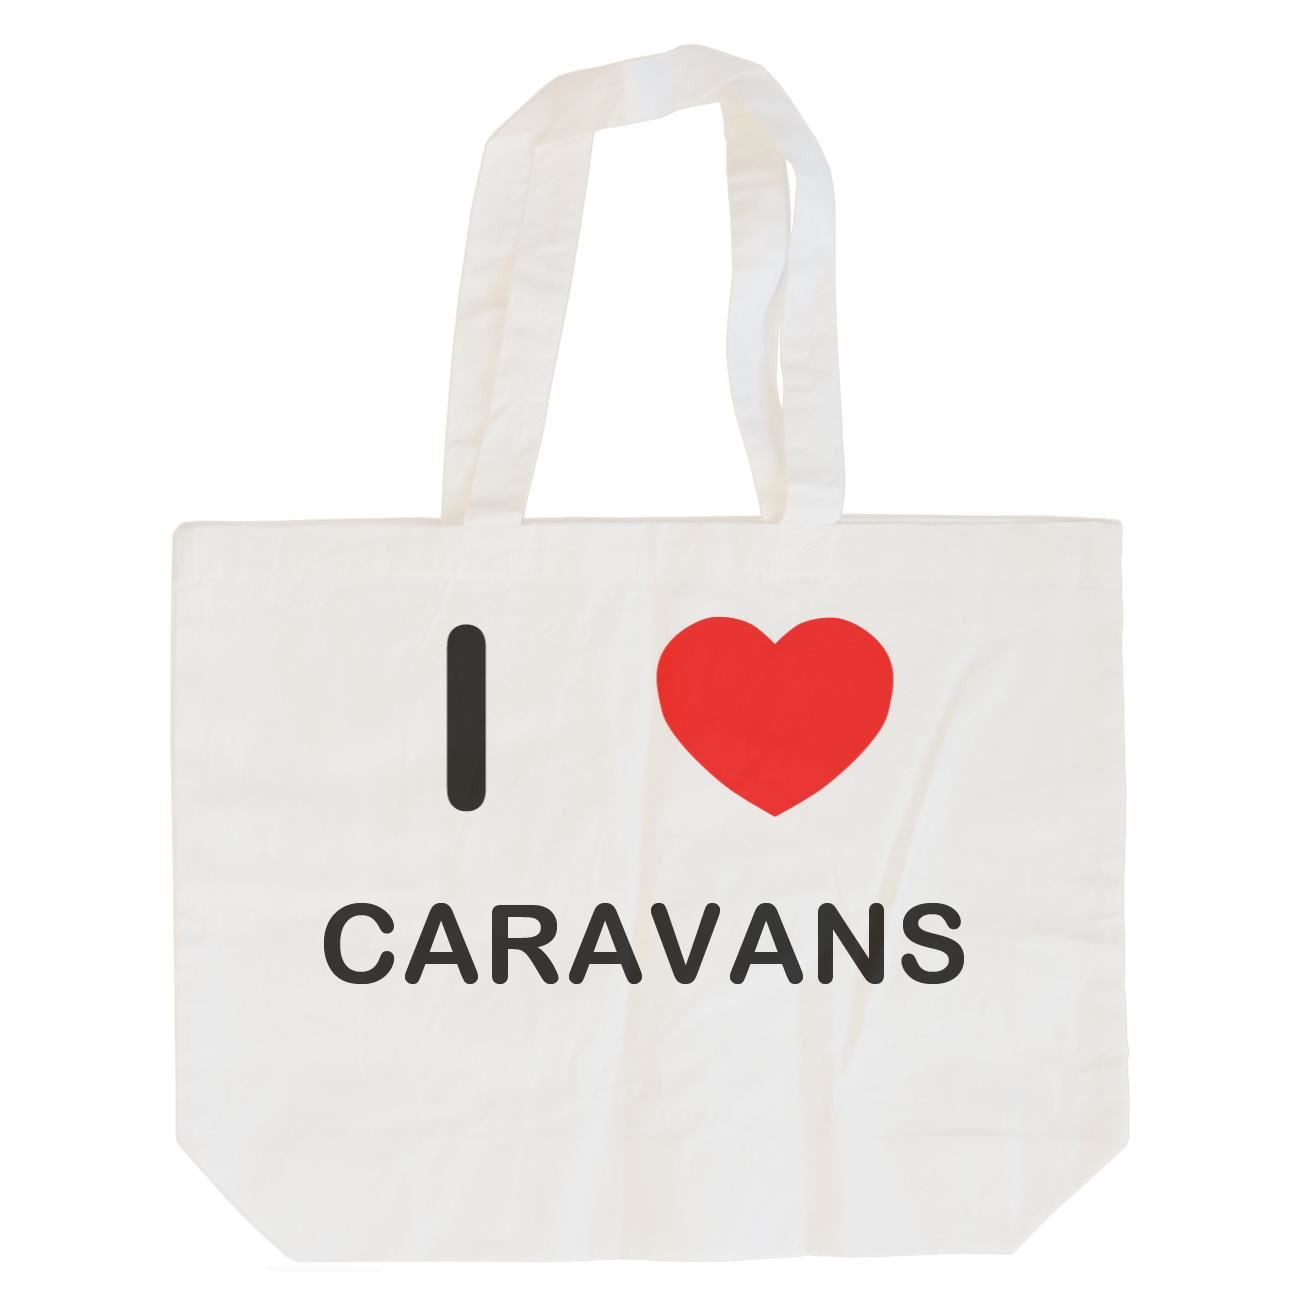 I Love Caravans - Cotton Bag | Size choice Tote, Shopper or Sling